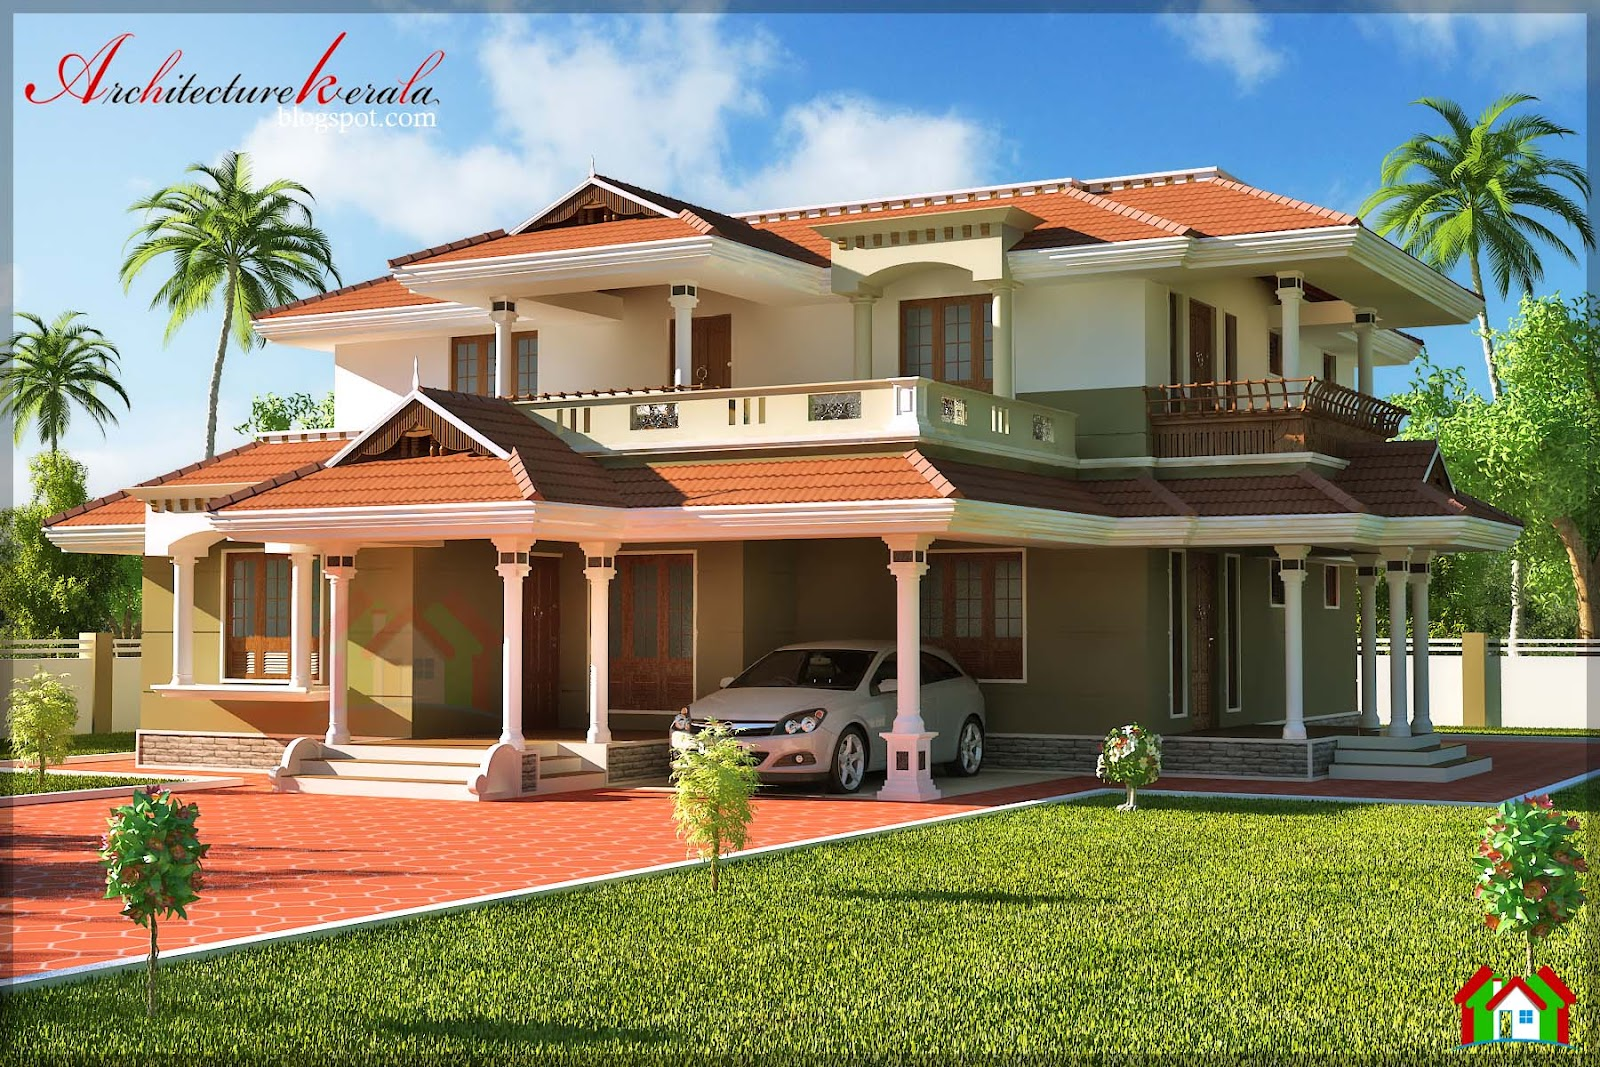 Bed room traditional style house design architecture kerala for Traditional home designs